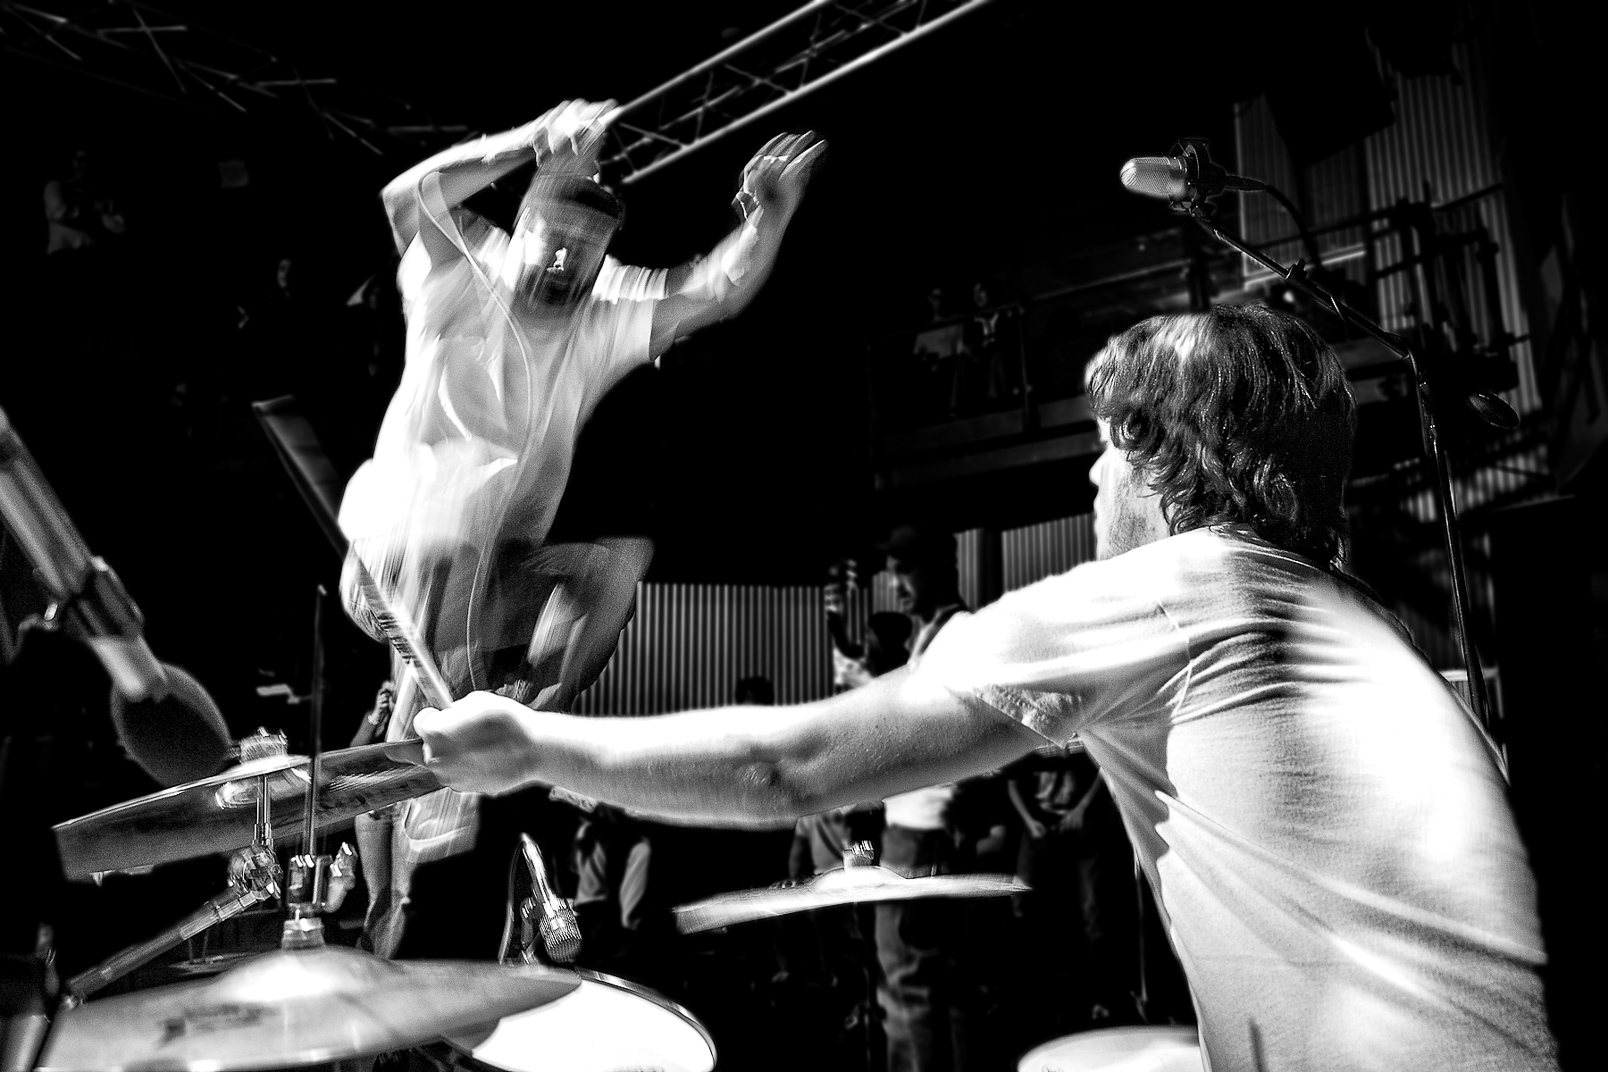 Black and white photograph of man jumping on stage with microphone in front of drummer